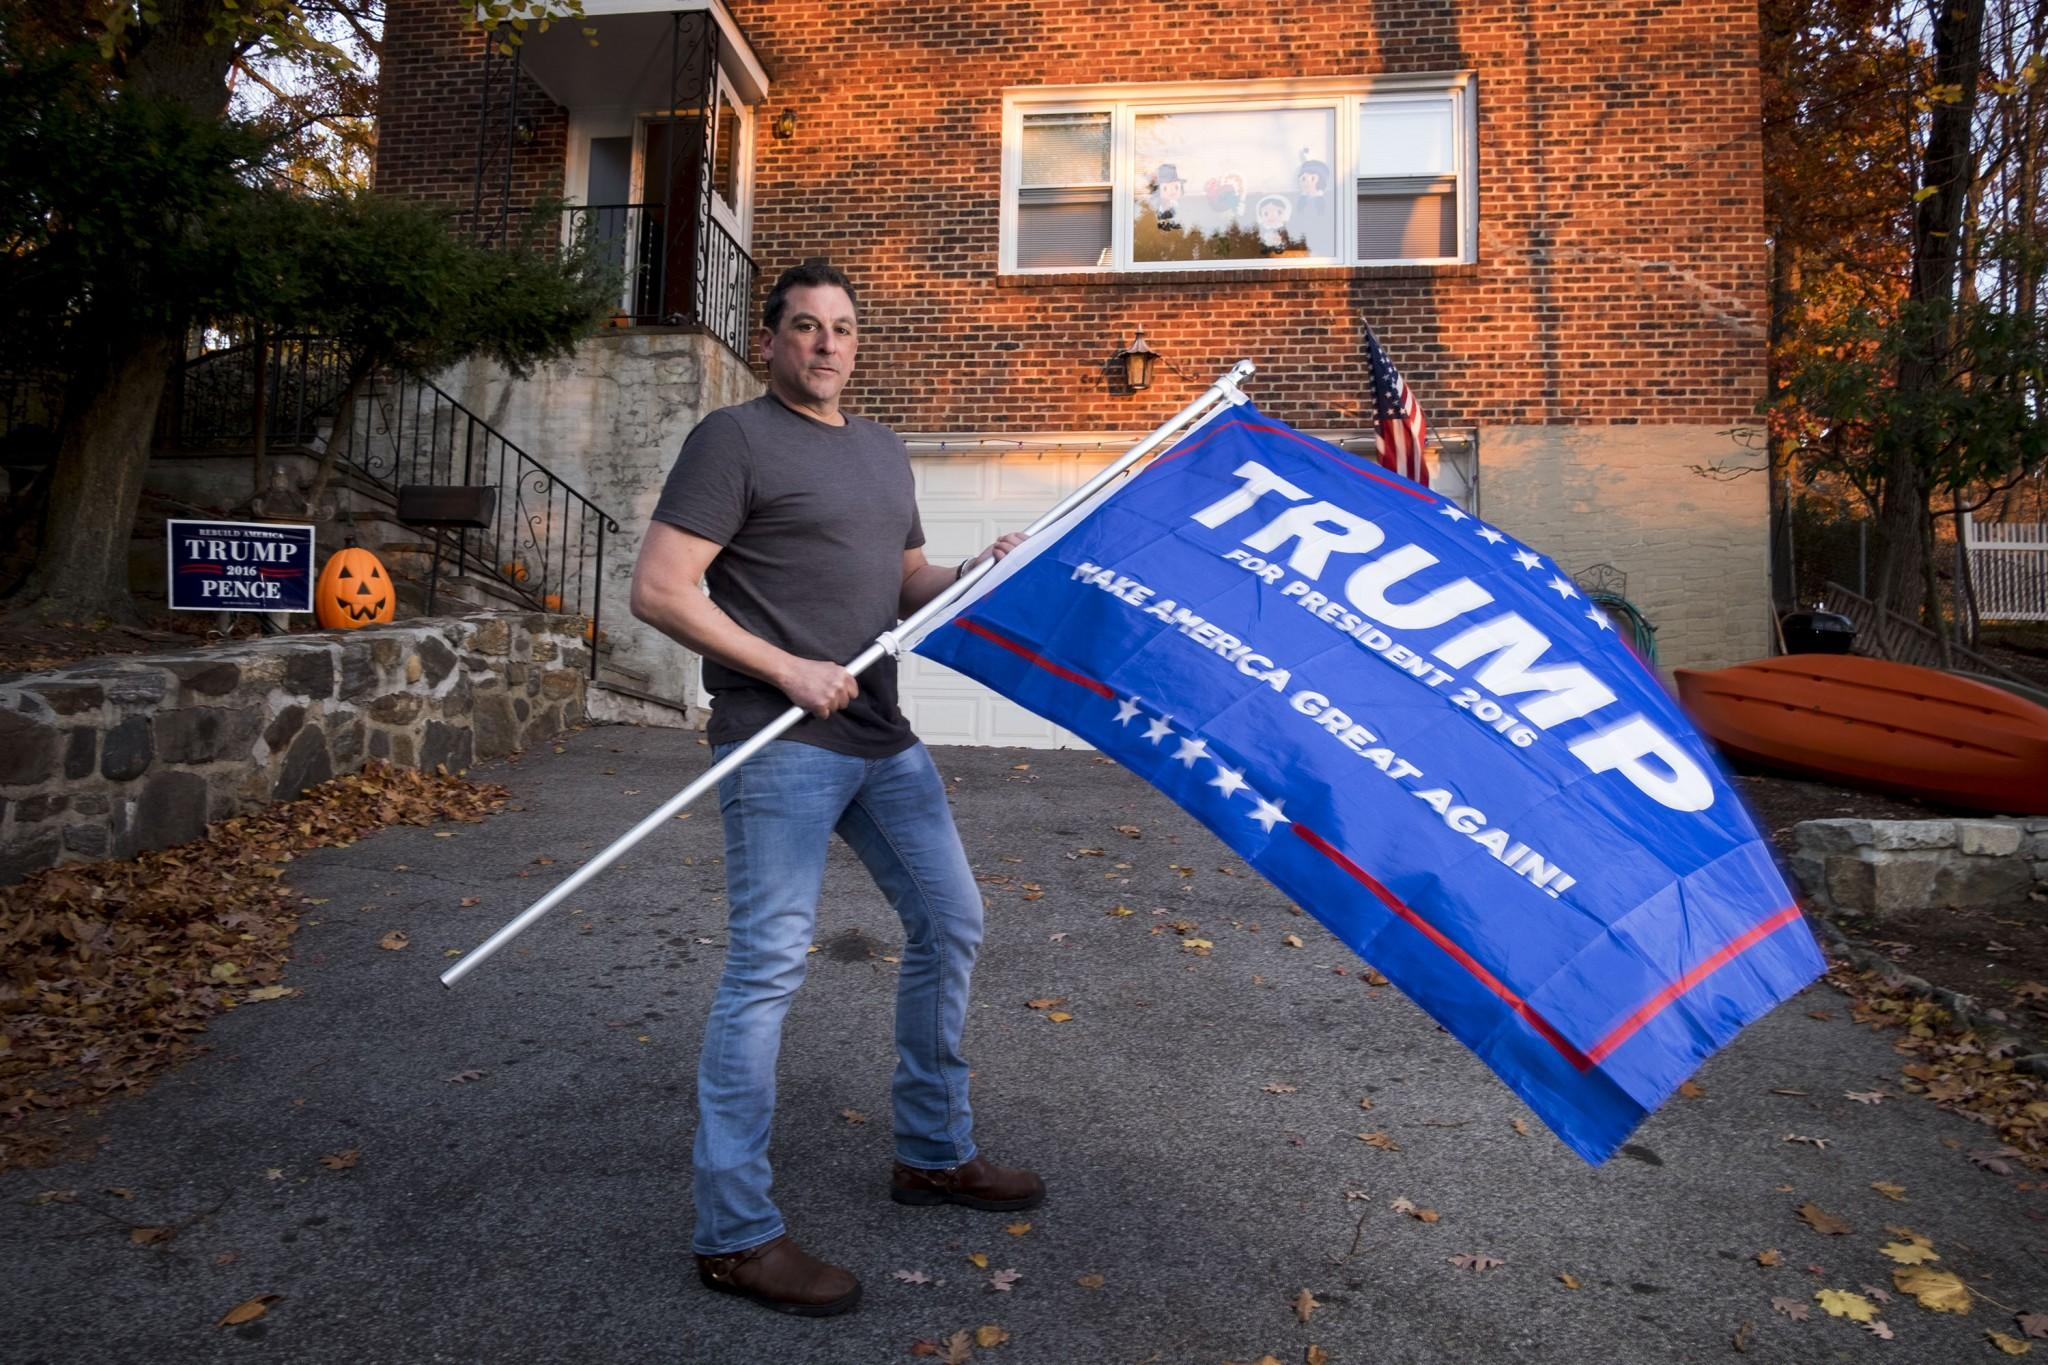 Trump supporter Chris Fresiello at his New York home on November 17, 2016. (David Scott Holloway for Yahoo News)